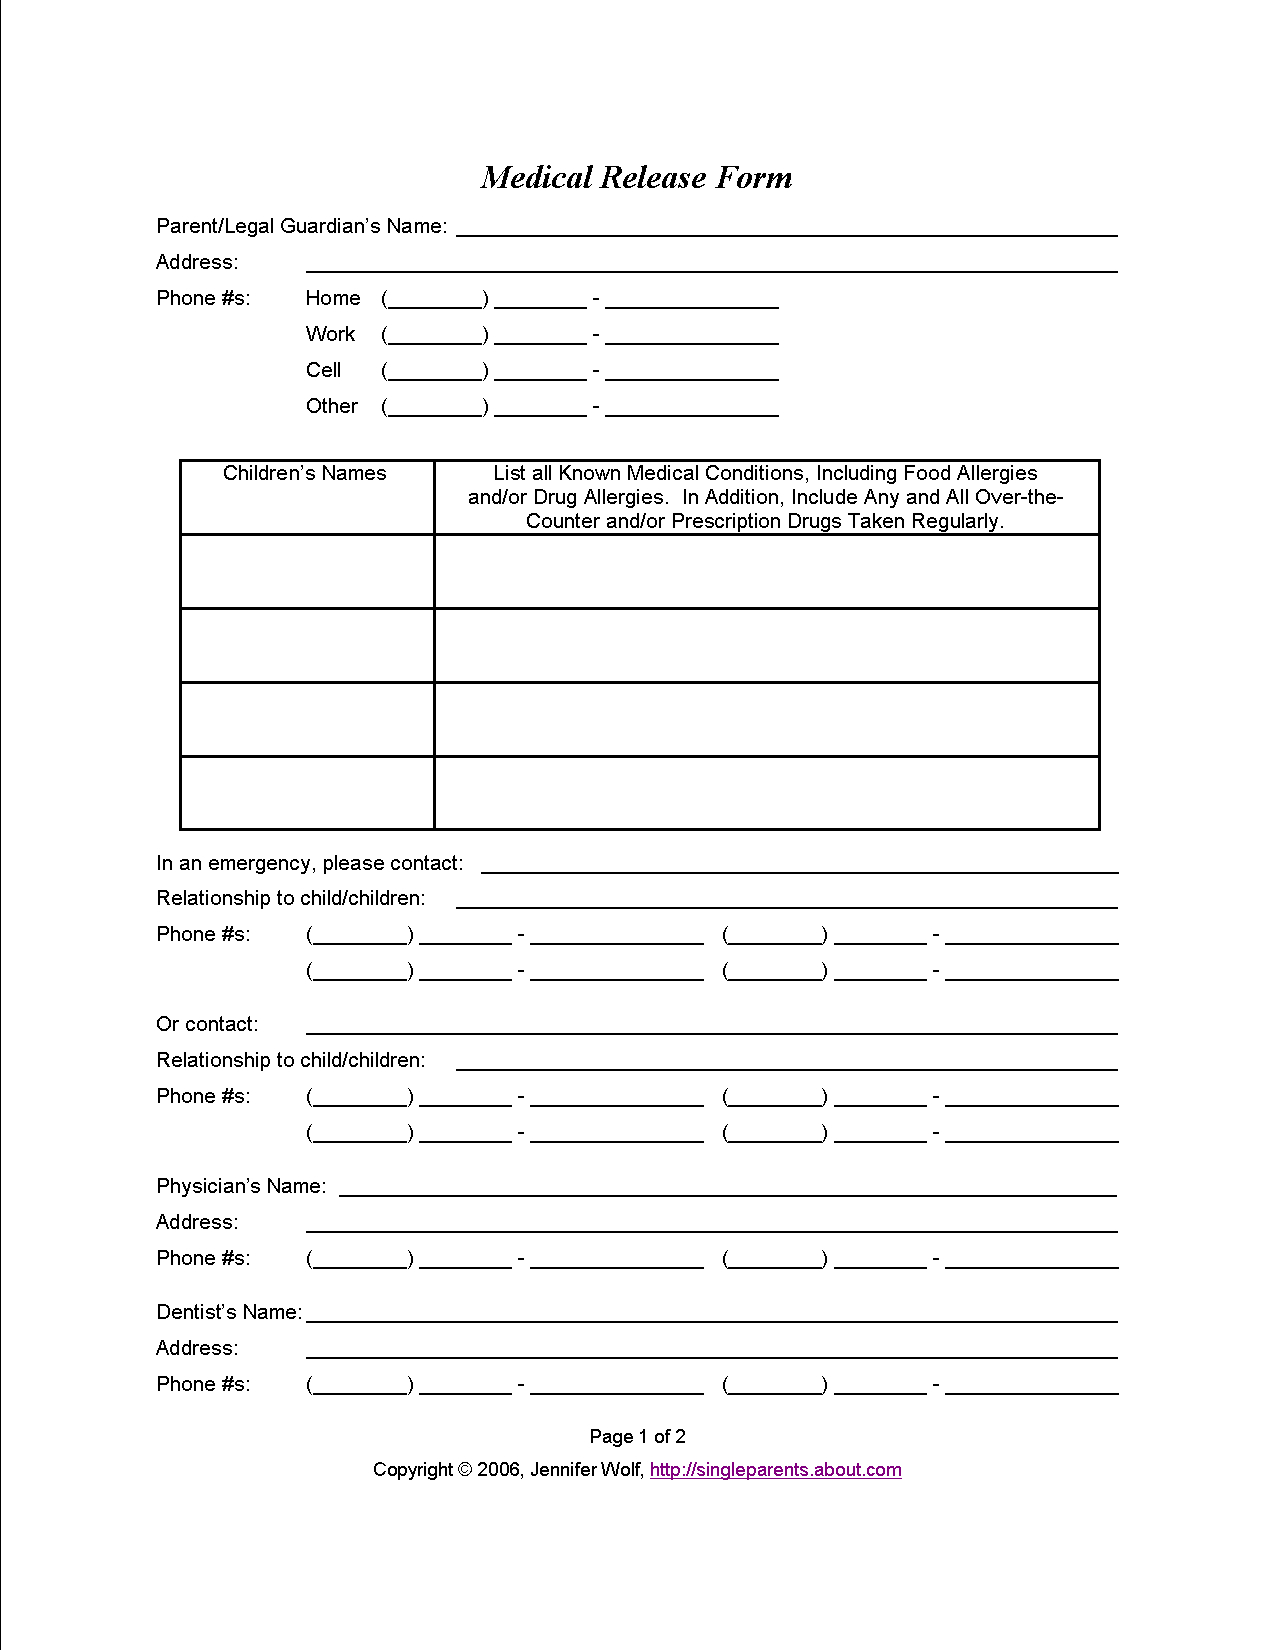 Do You Have A Medical Release Form For Your Kids?   Travel   Medical - Free Printable Medical Forms Kit